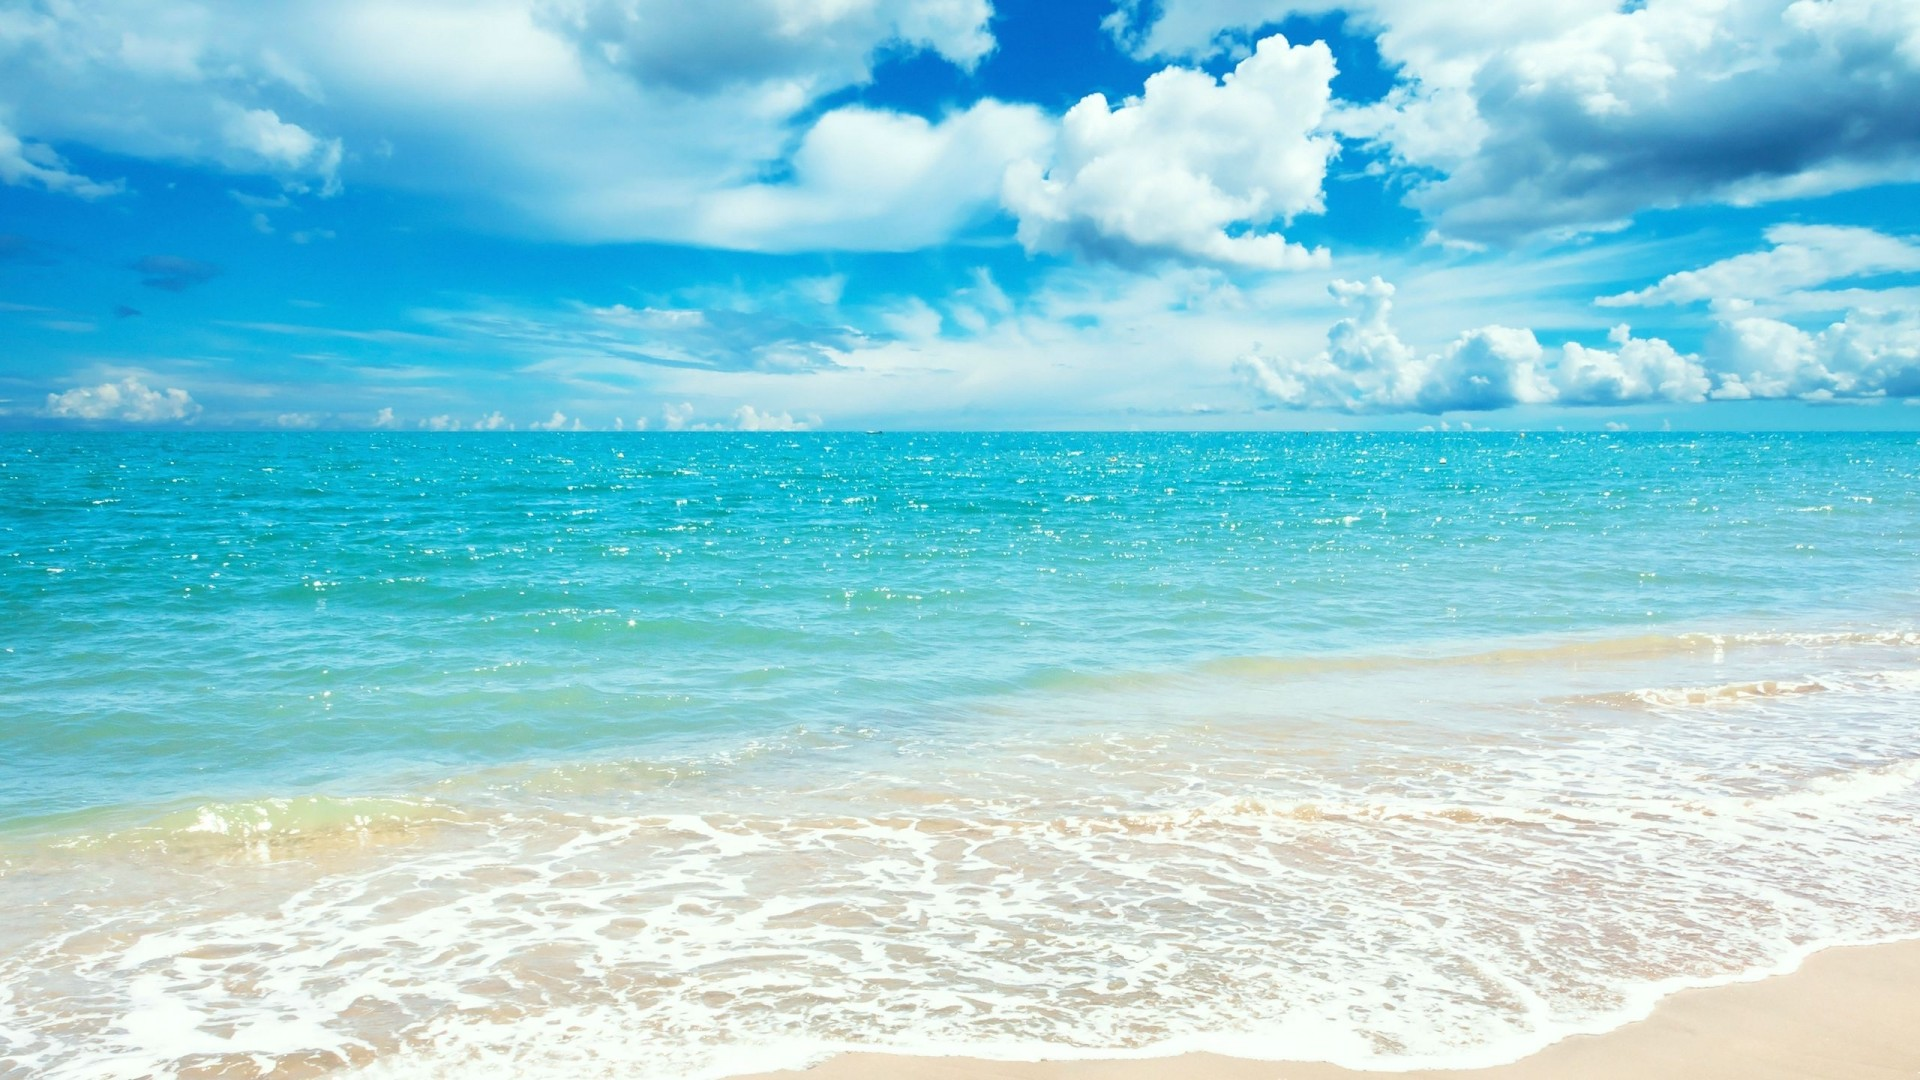 Summer Beach - Wallpaper, High Definition, High Quality ...